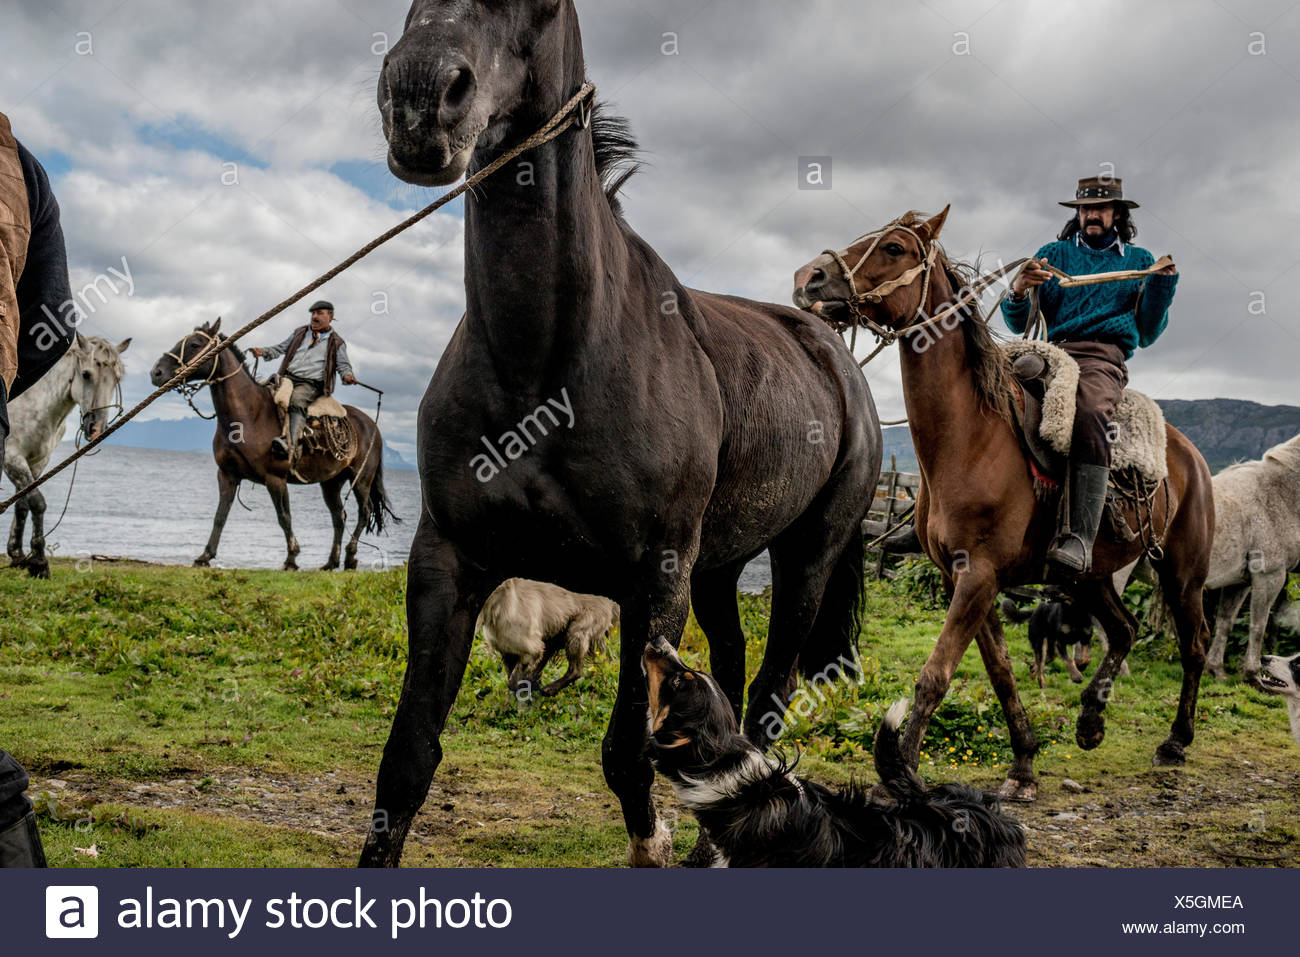 Bagualeros, or cowboys who capture feral livestock, herd horses for branding at a ranch. - Stock Image